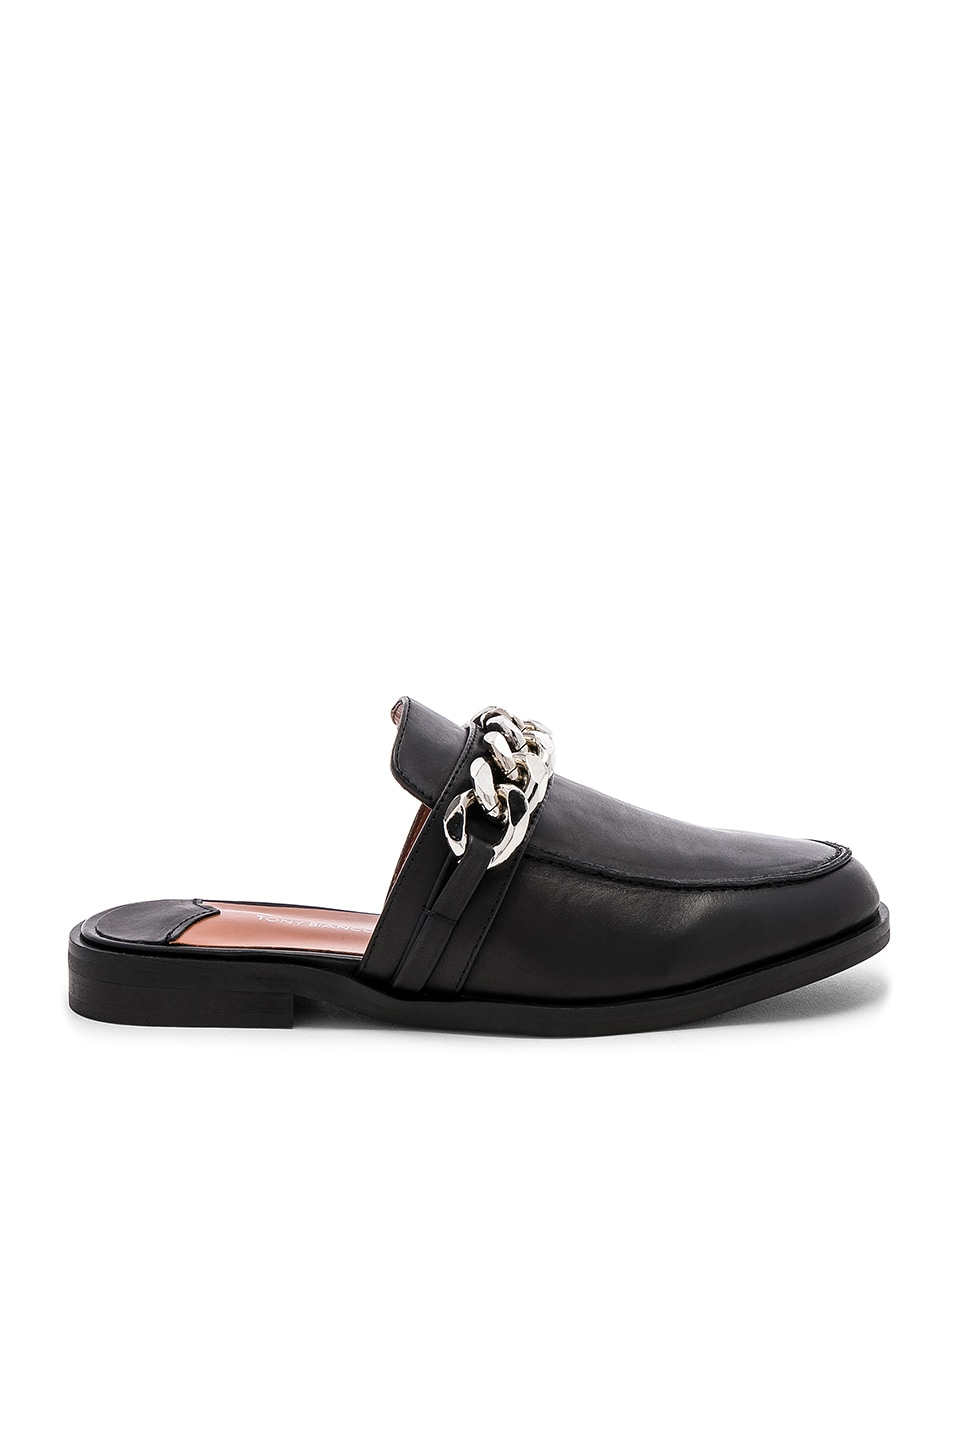 Tony Bianco Dion Loafer in Black Jetta